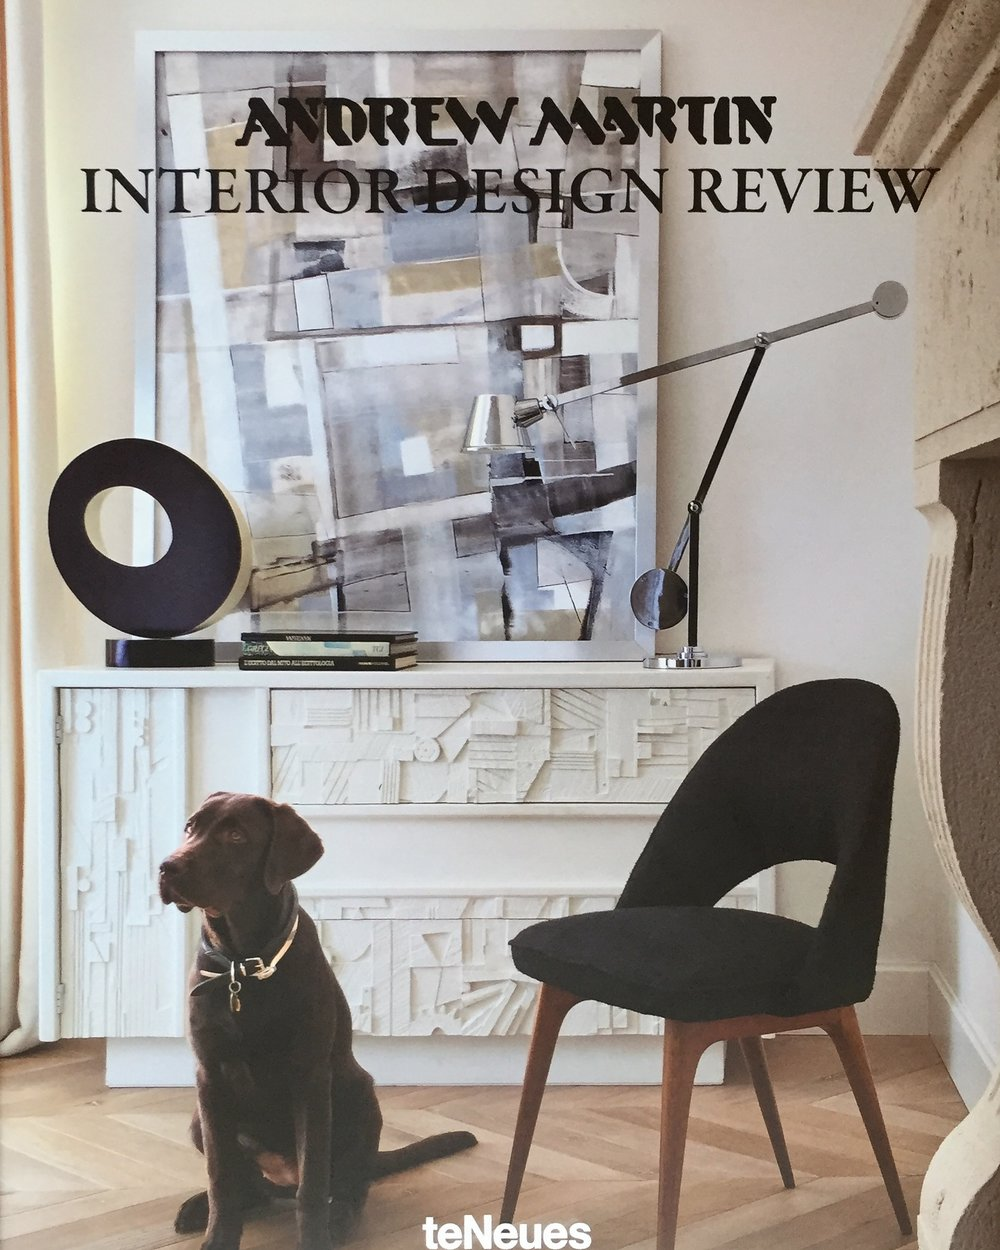 The cover of the 2016 Andrew Martin Interior Design Review, Volume 20.